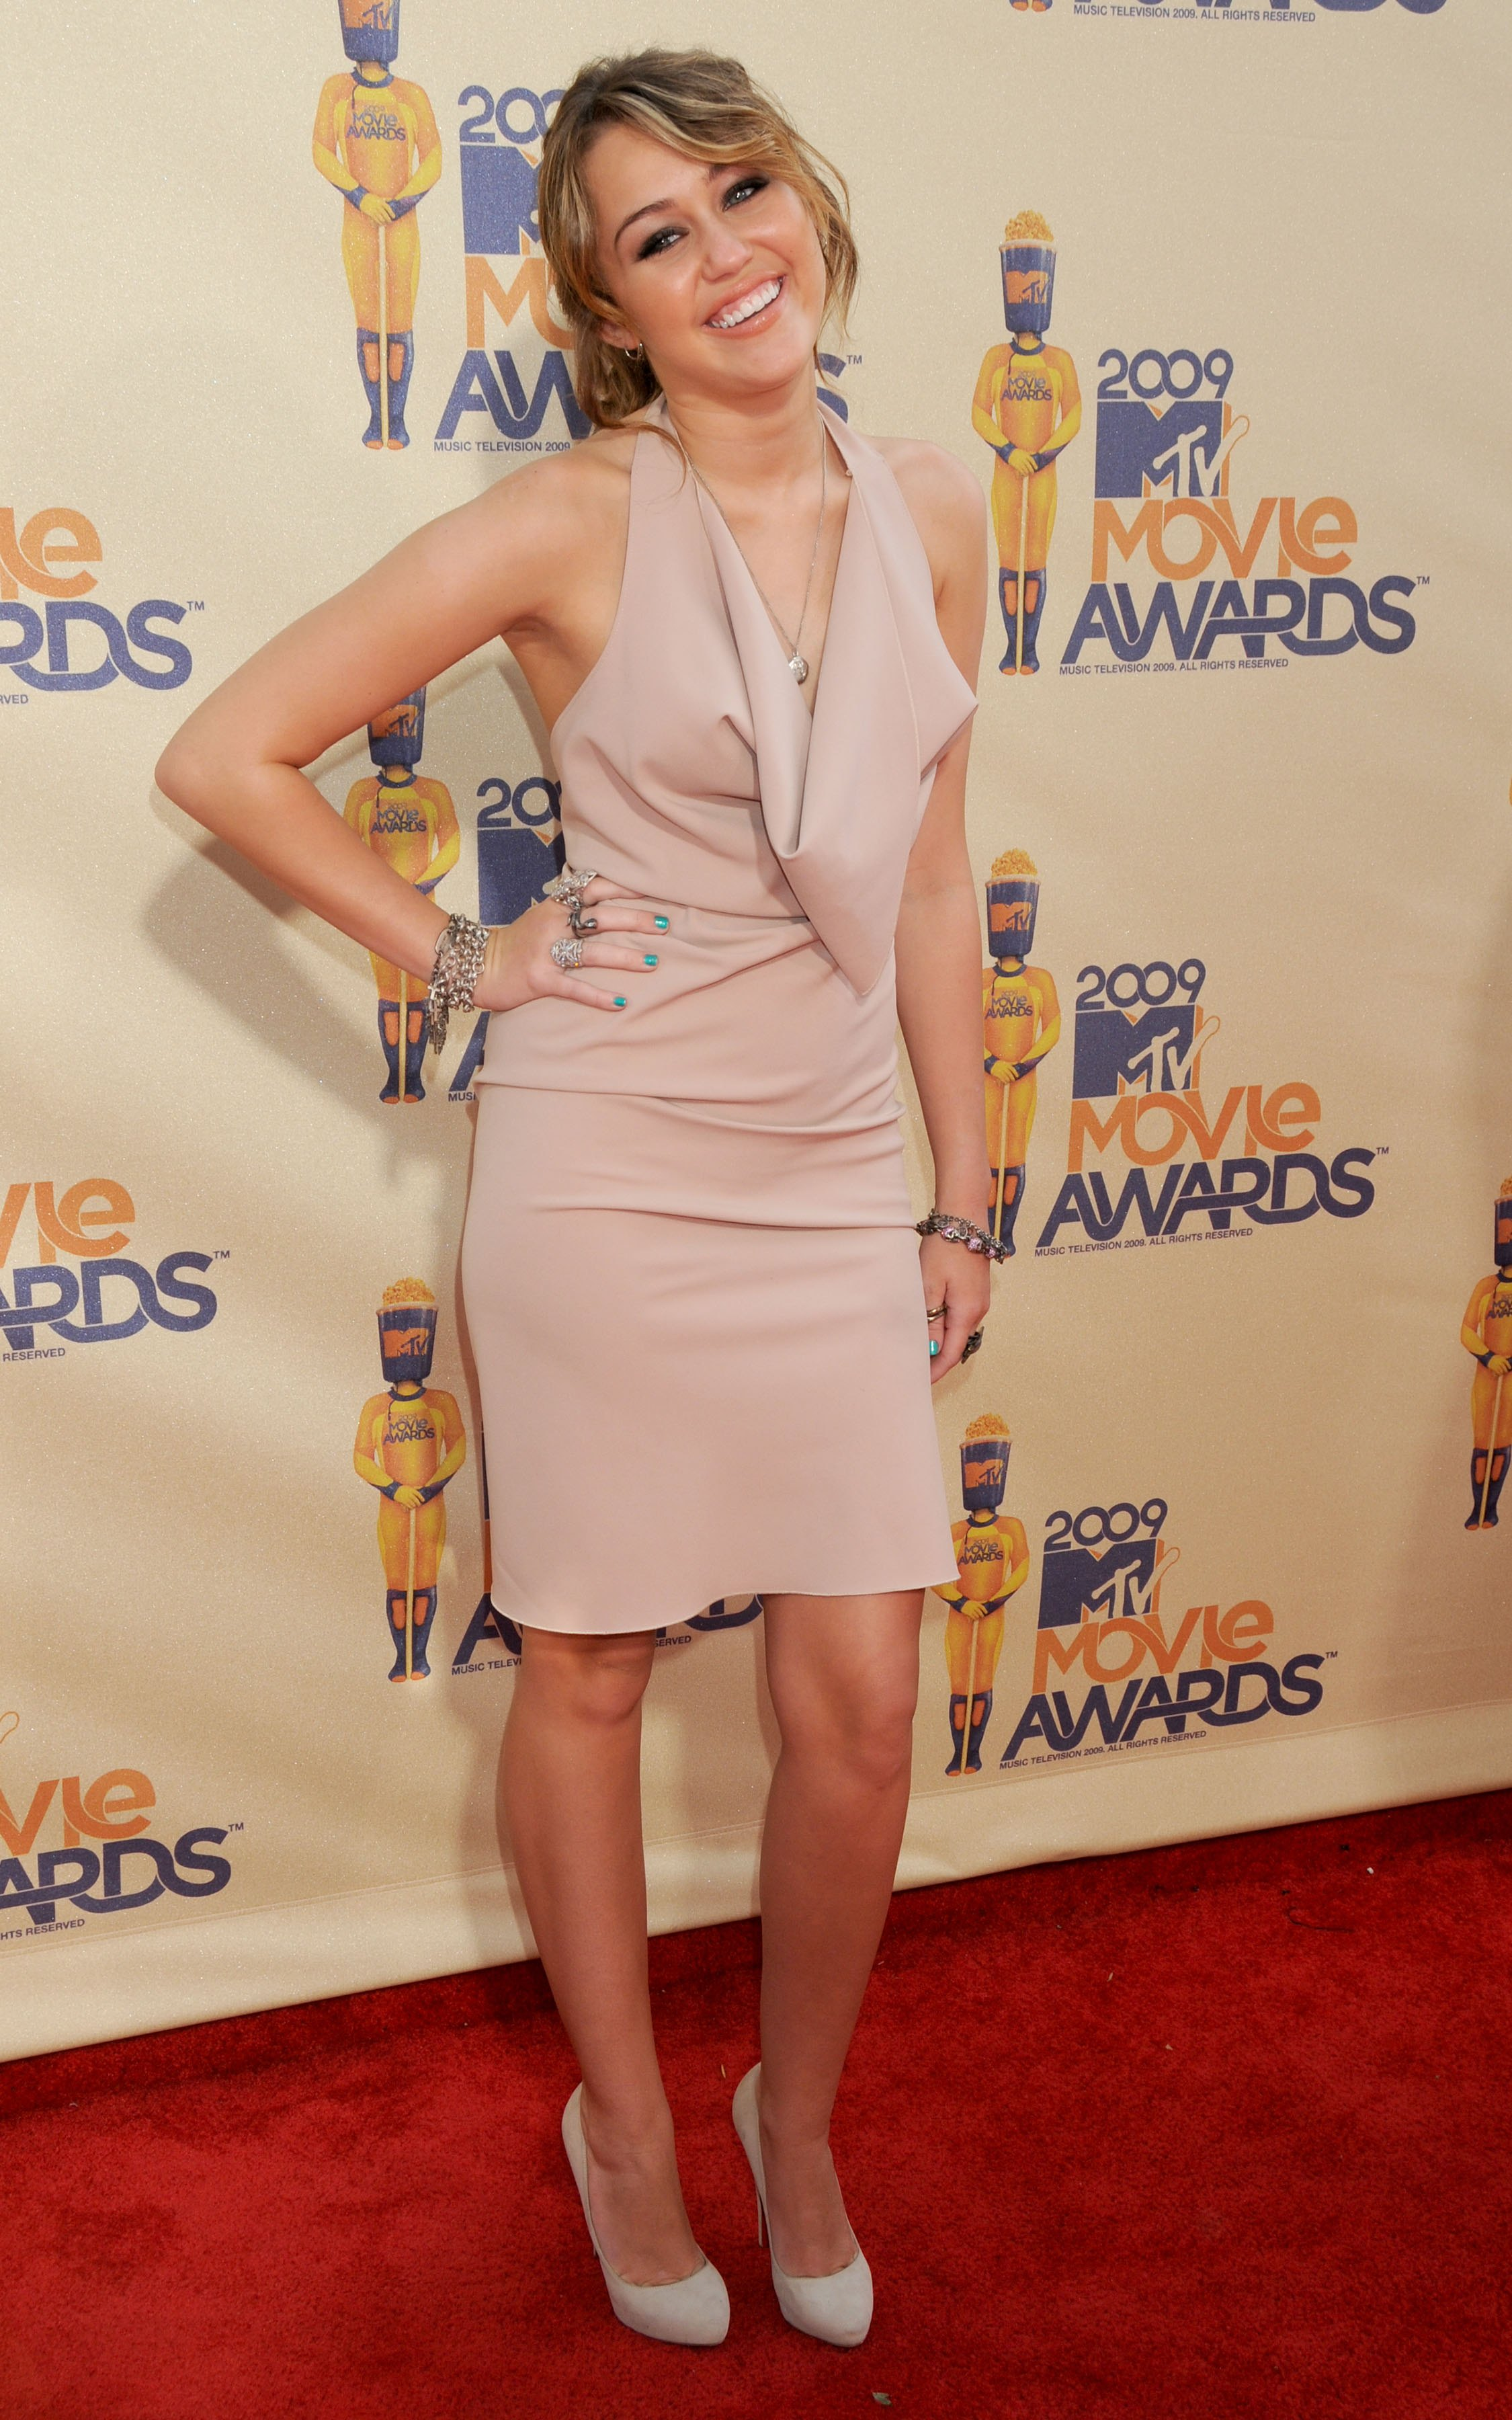 miley-cyrus-mtv-movie-awards-9